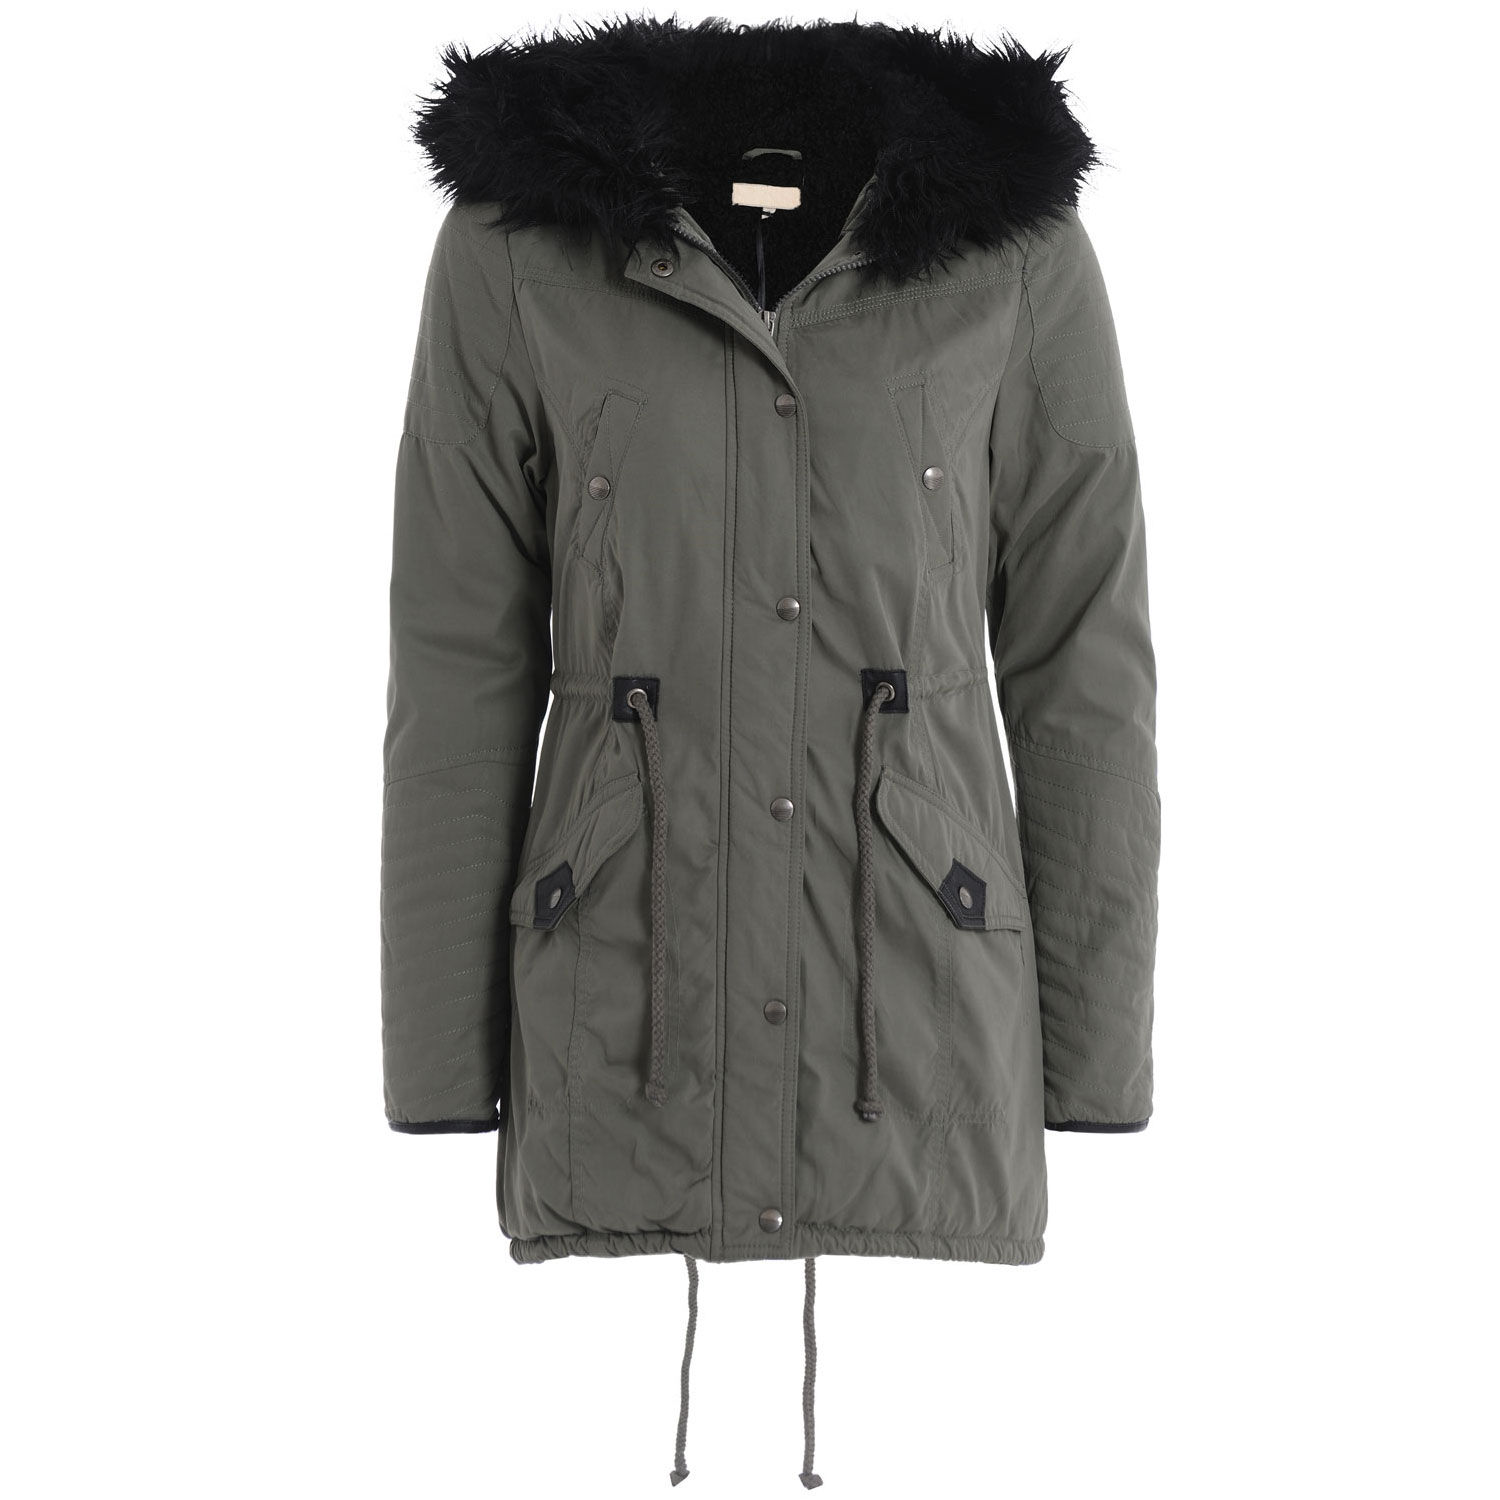 Shop the latest styles of Womens Parka Coats at Macys. Check out our designer collection of chic coats including peacoats, trench coats, puffer coats and more! Lauren Ralph Lauren Faux-Fur Hooded Parka $ Free ship at $ Enjoy Free Shipping at $75! See exclusions.